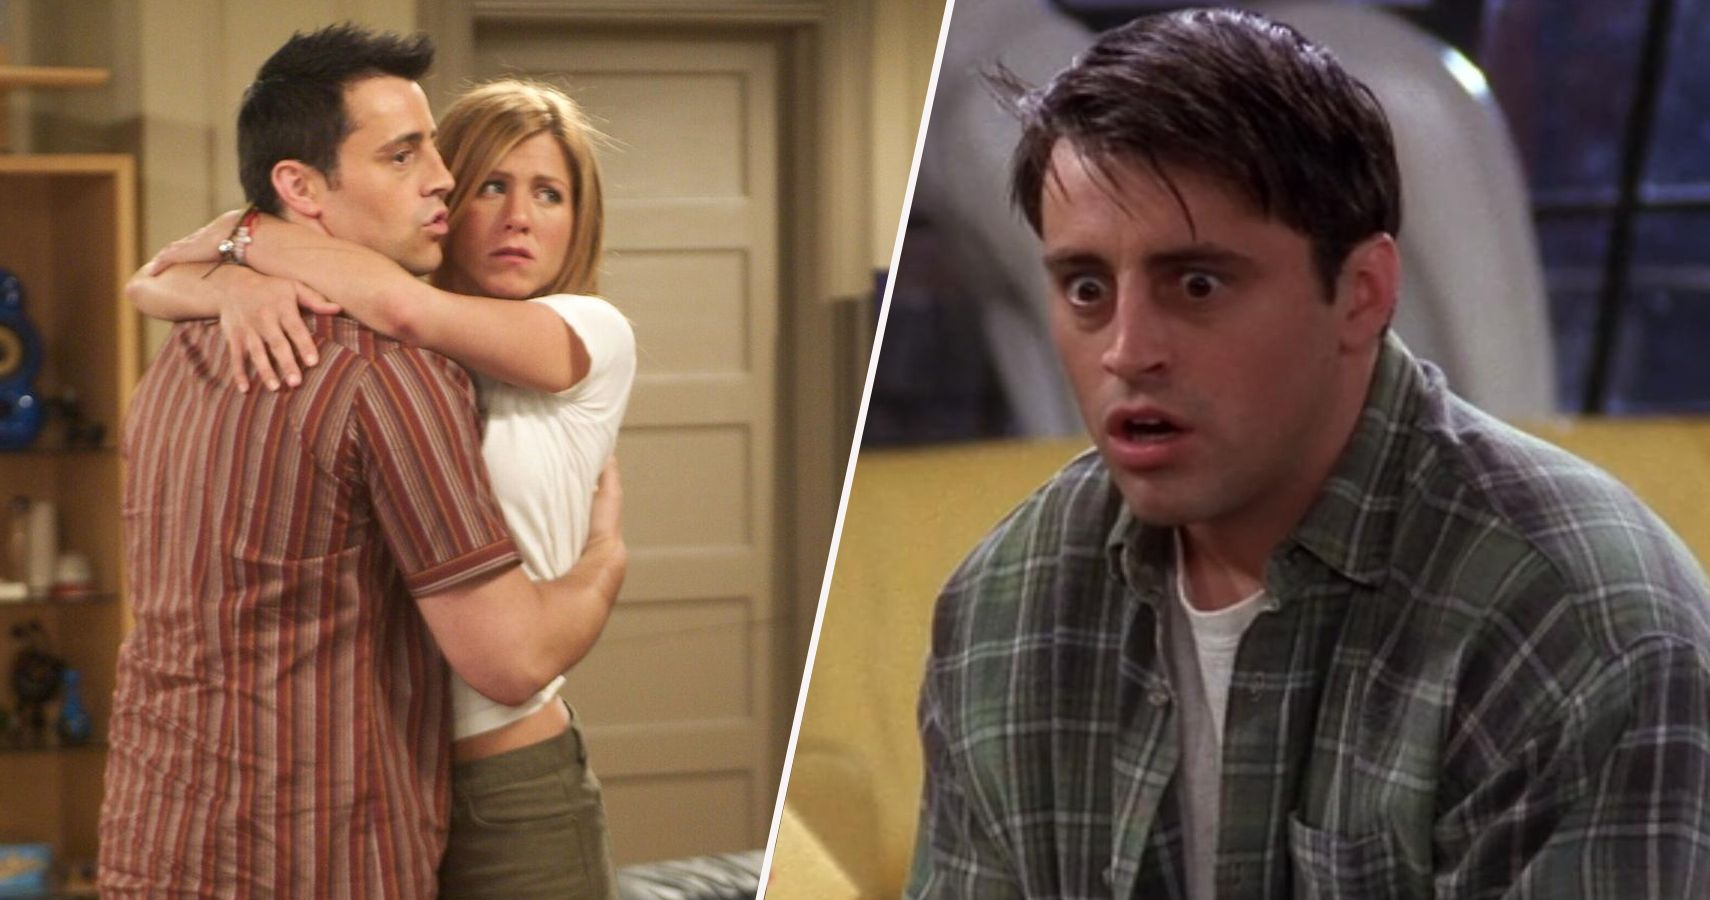 Friends: 20 Things Wrong With Joey We All Choose To Ignore